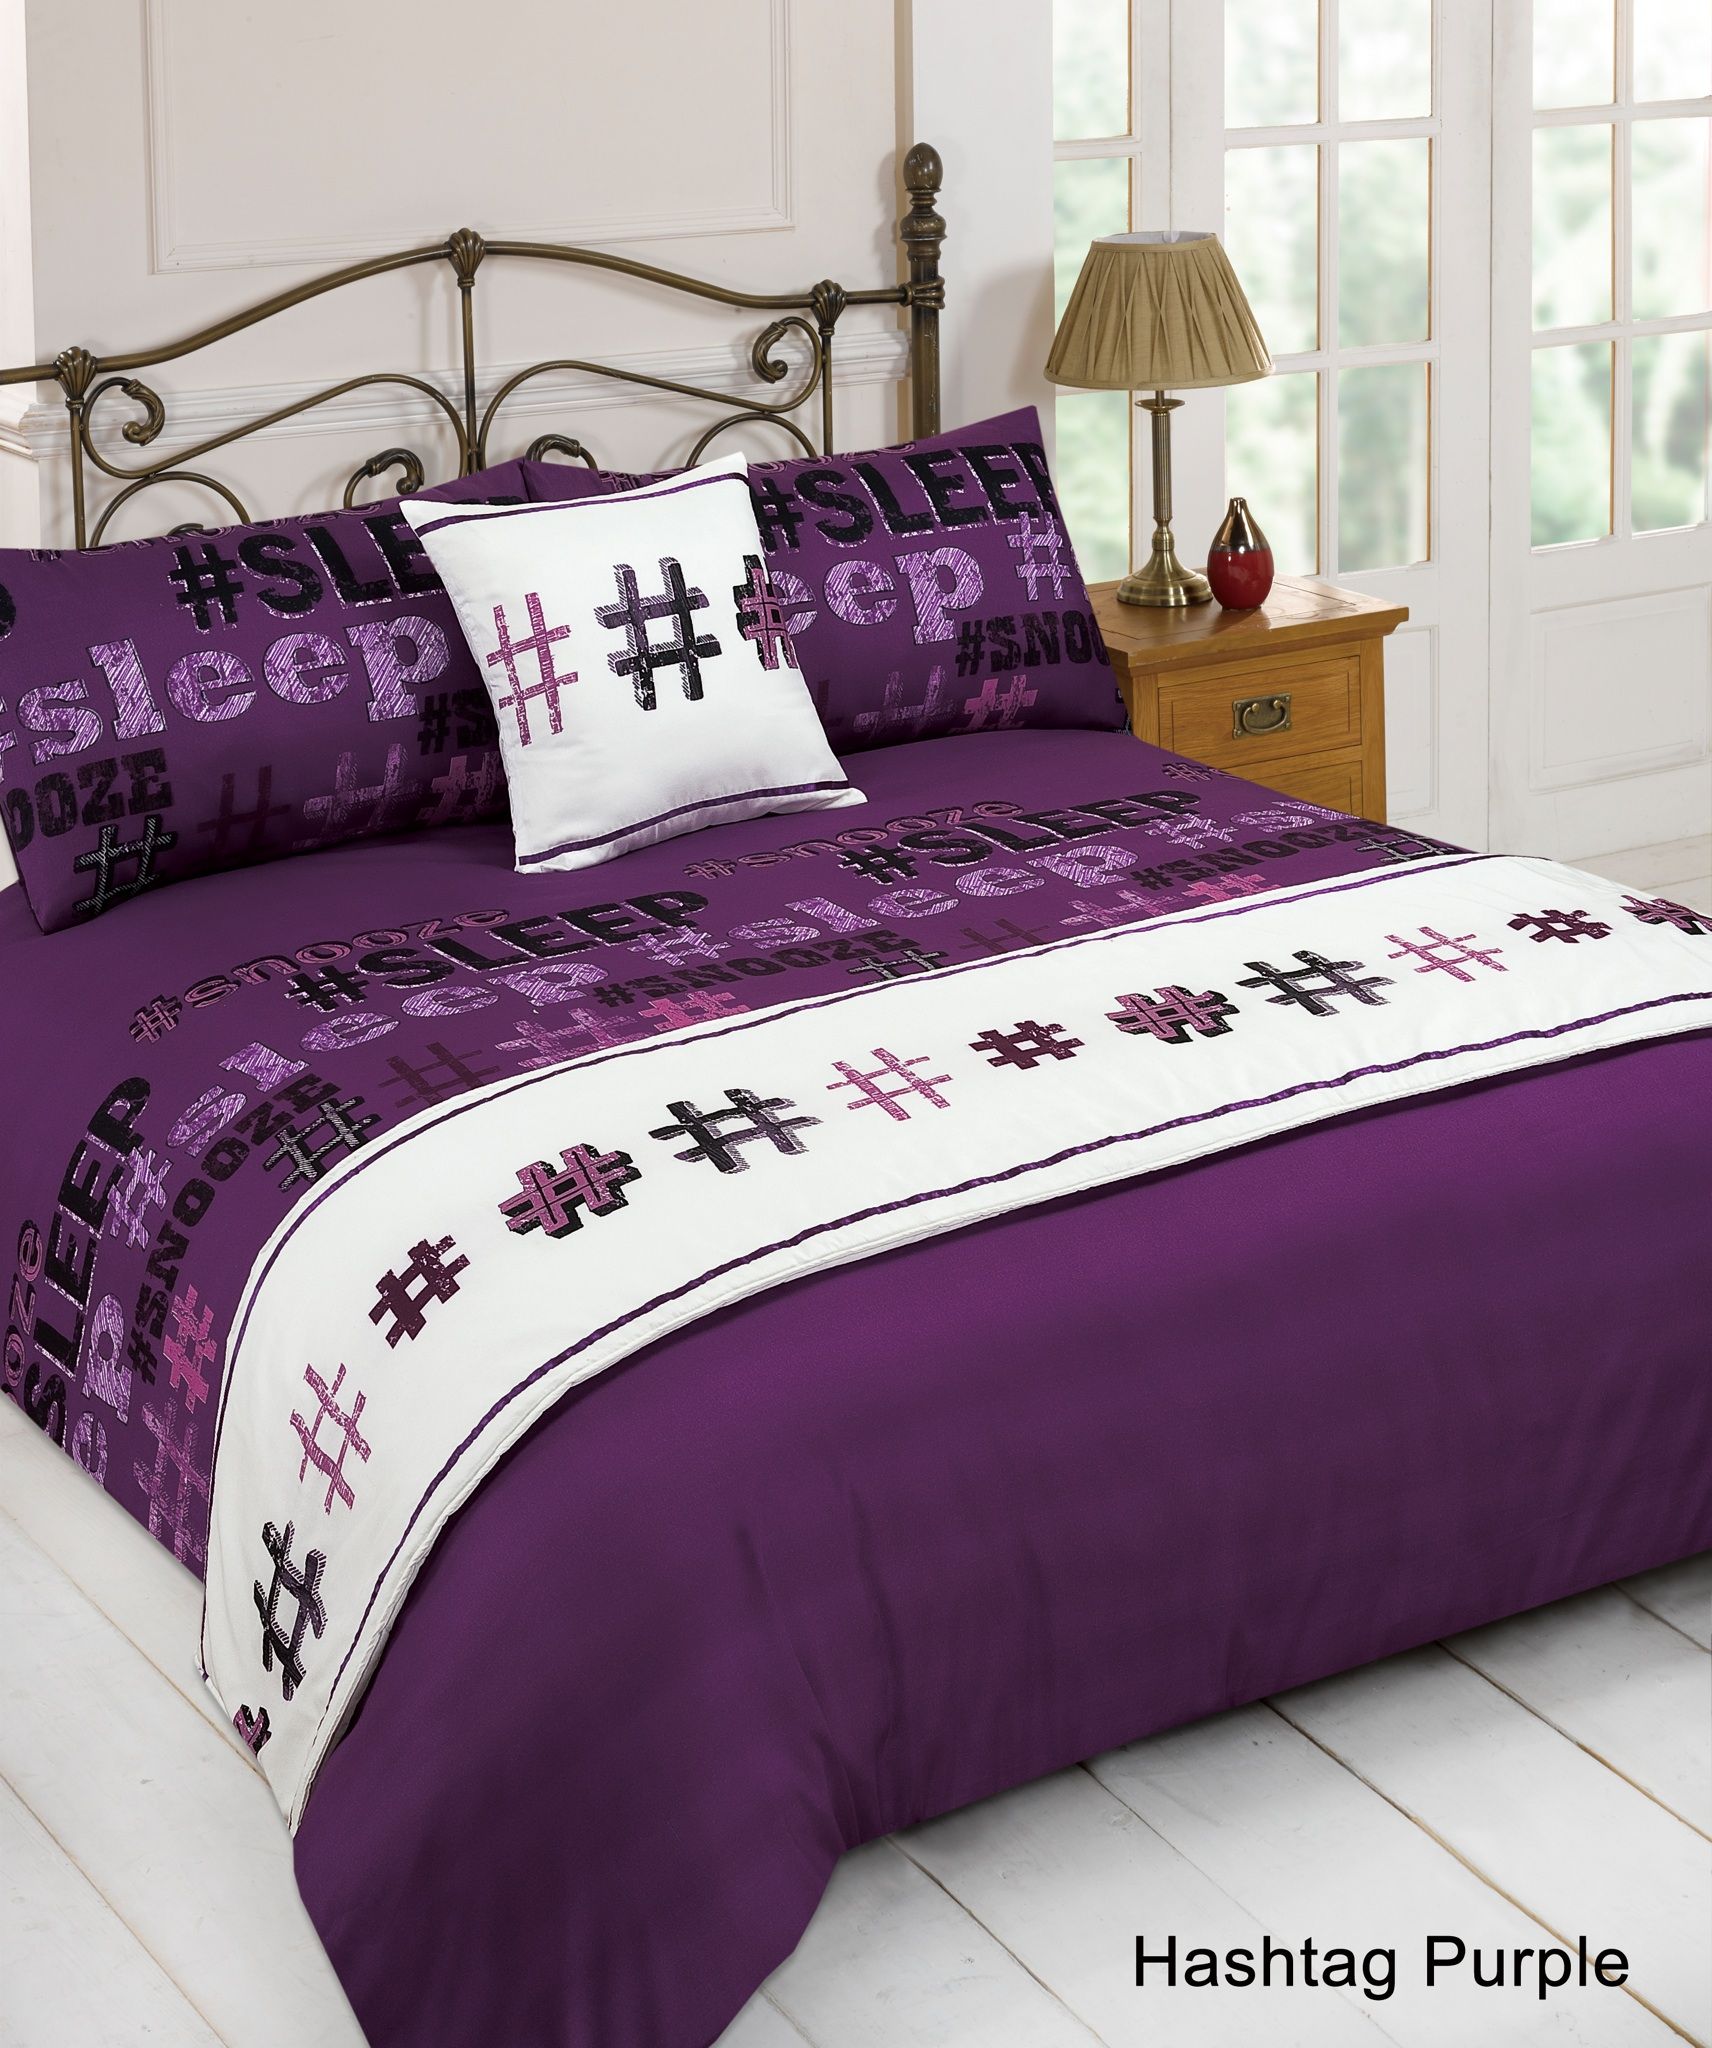 King Size Duvet Cover Sale | Modern Duvet Covers | King Size Duvet Covers